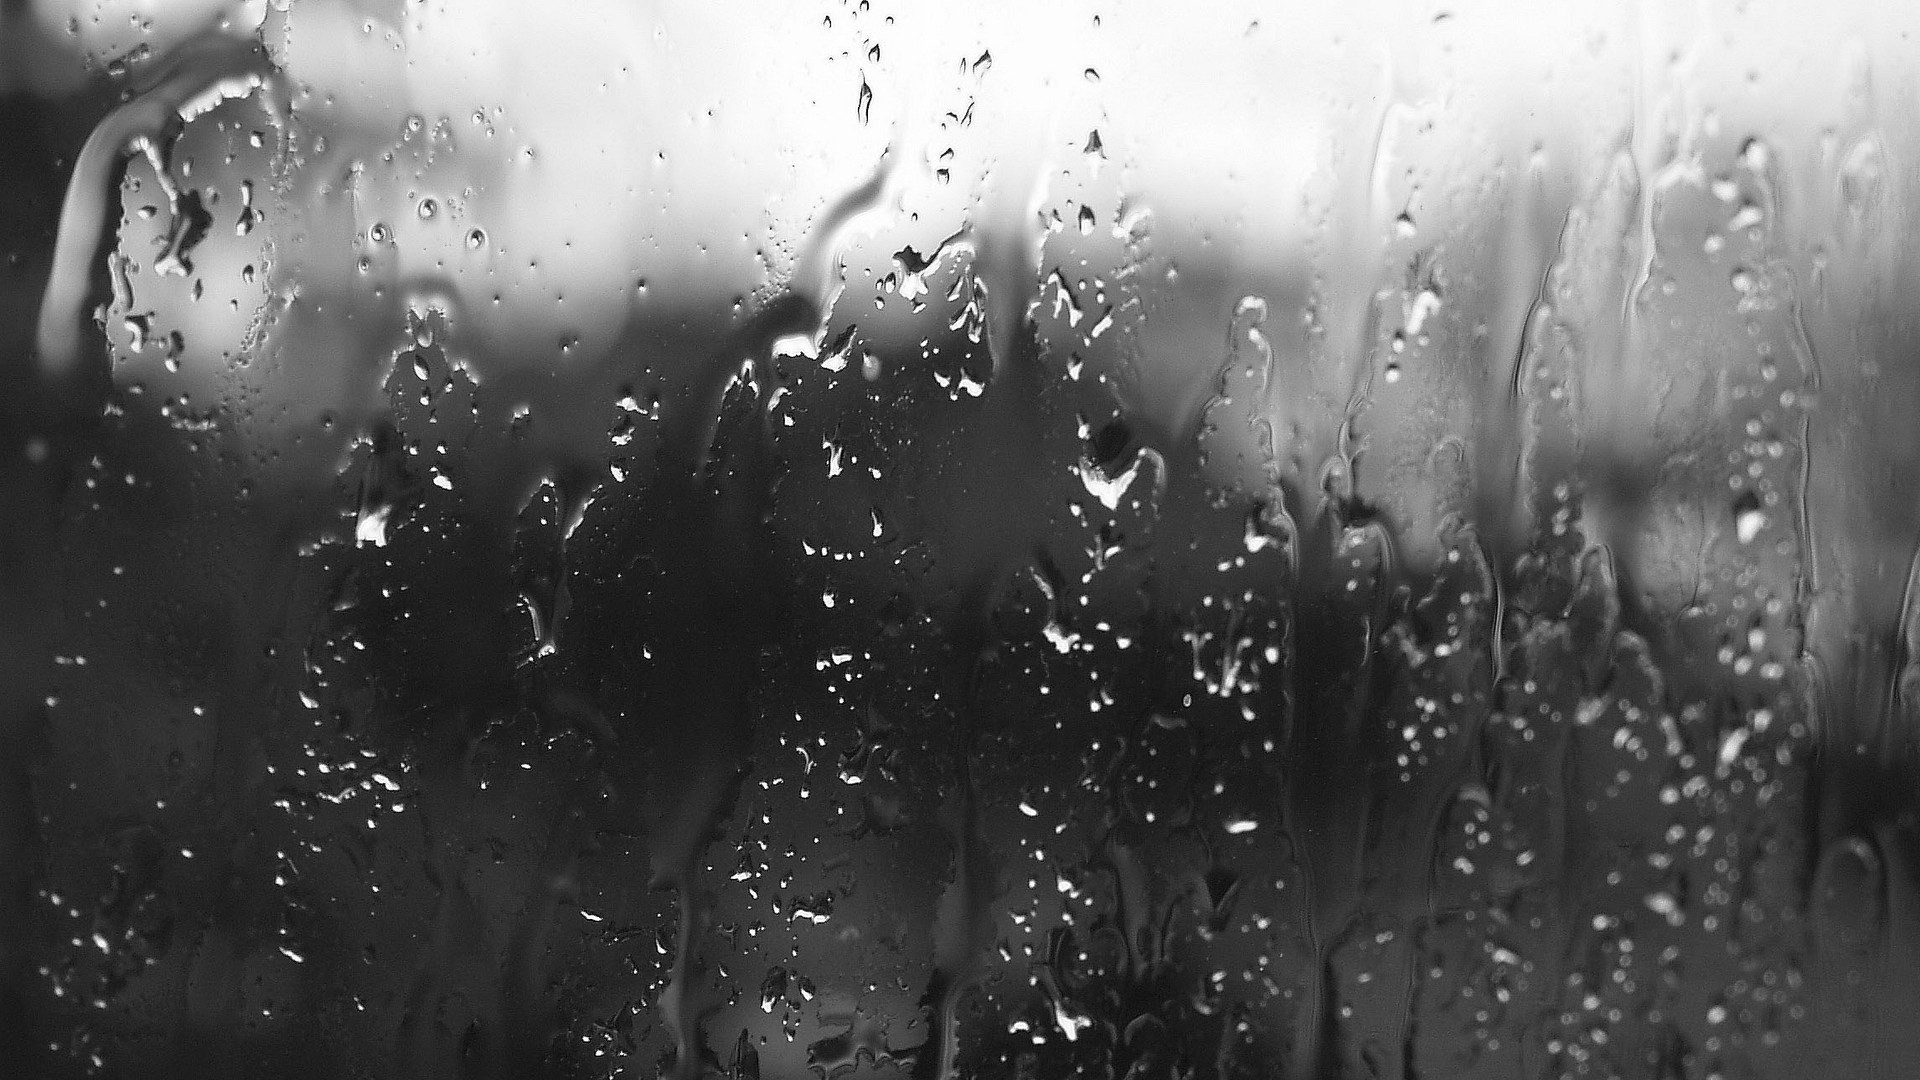 Rainy Wallpapers 1080p (74+ Images